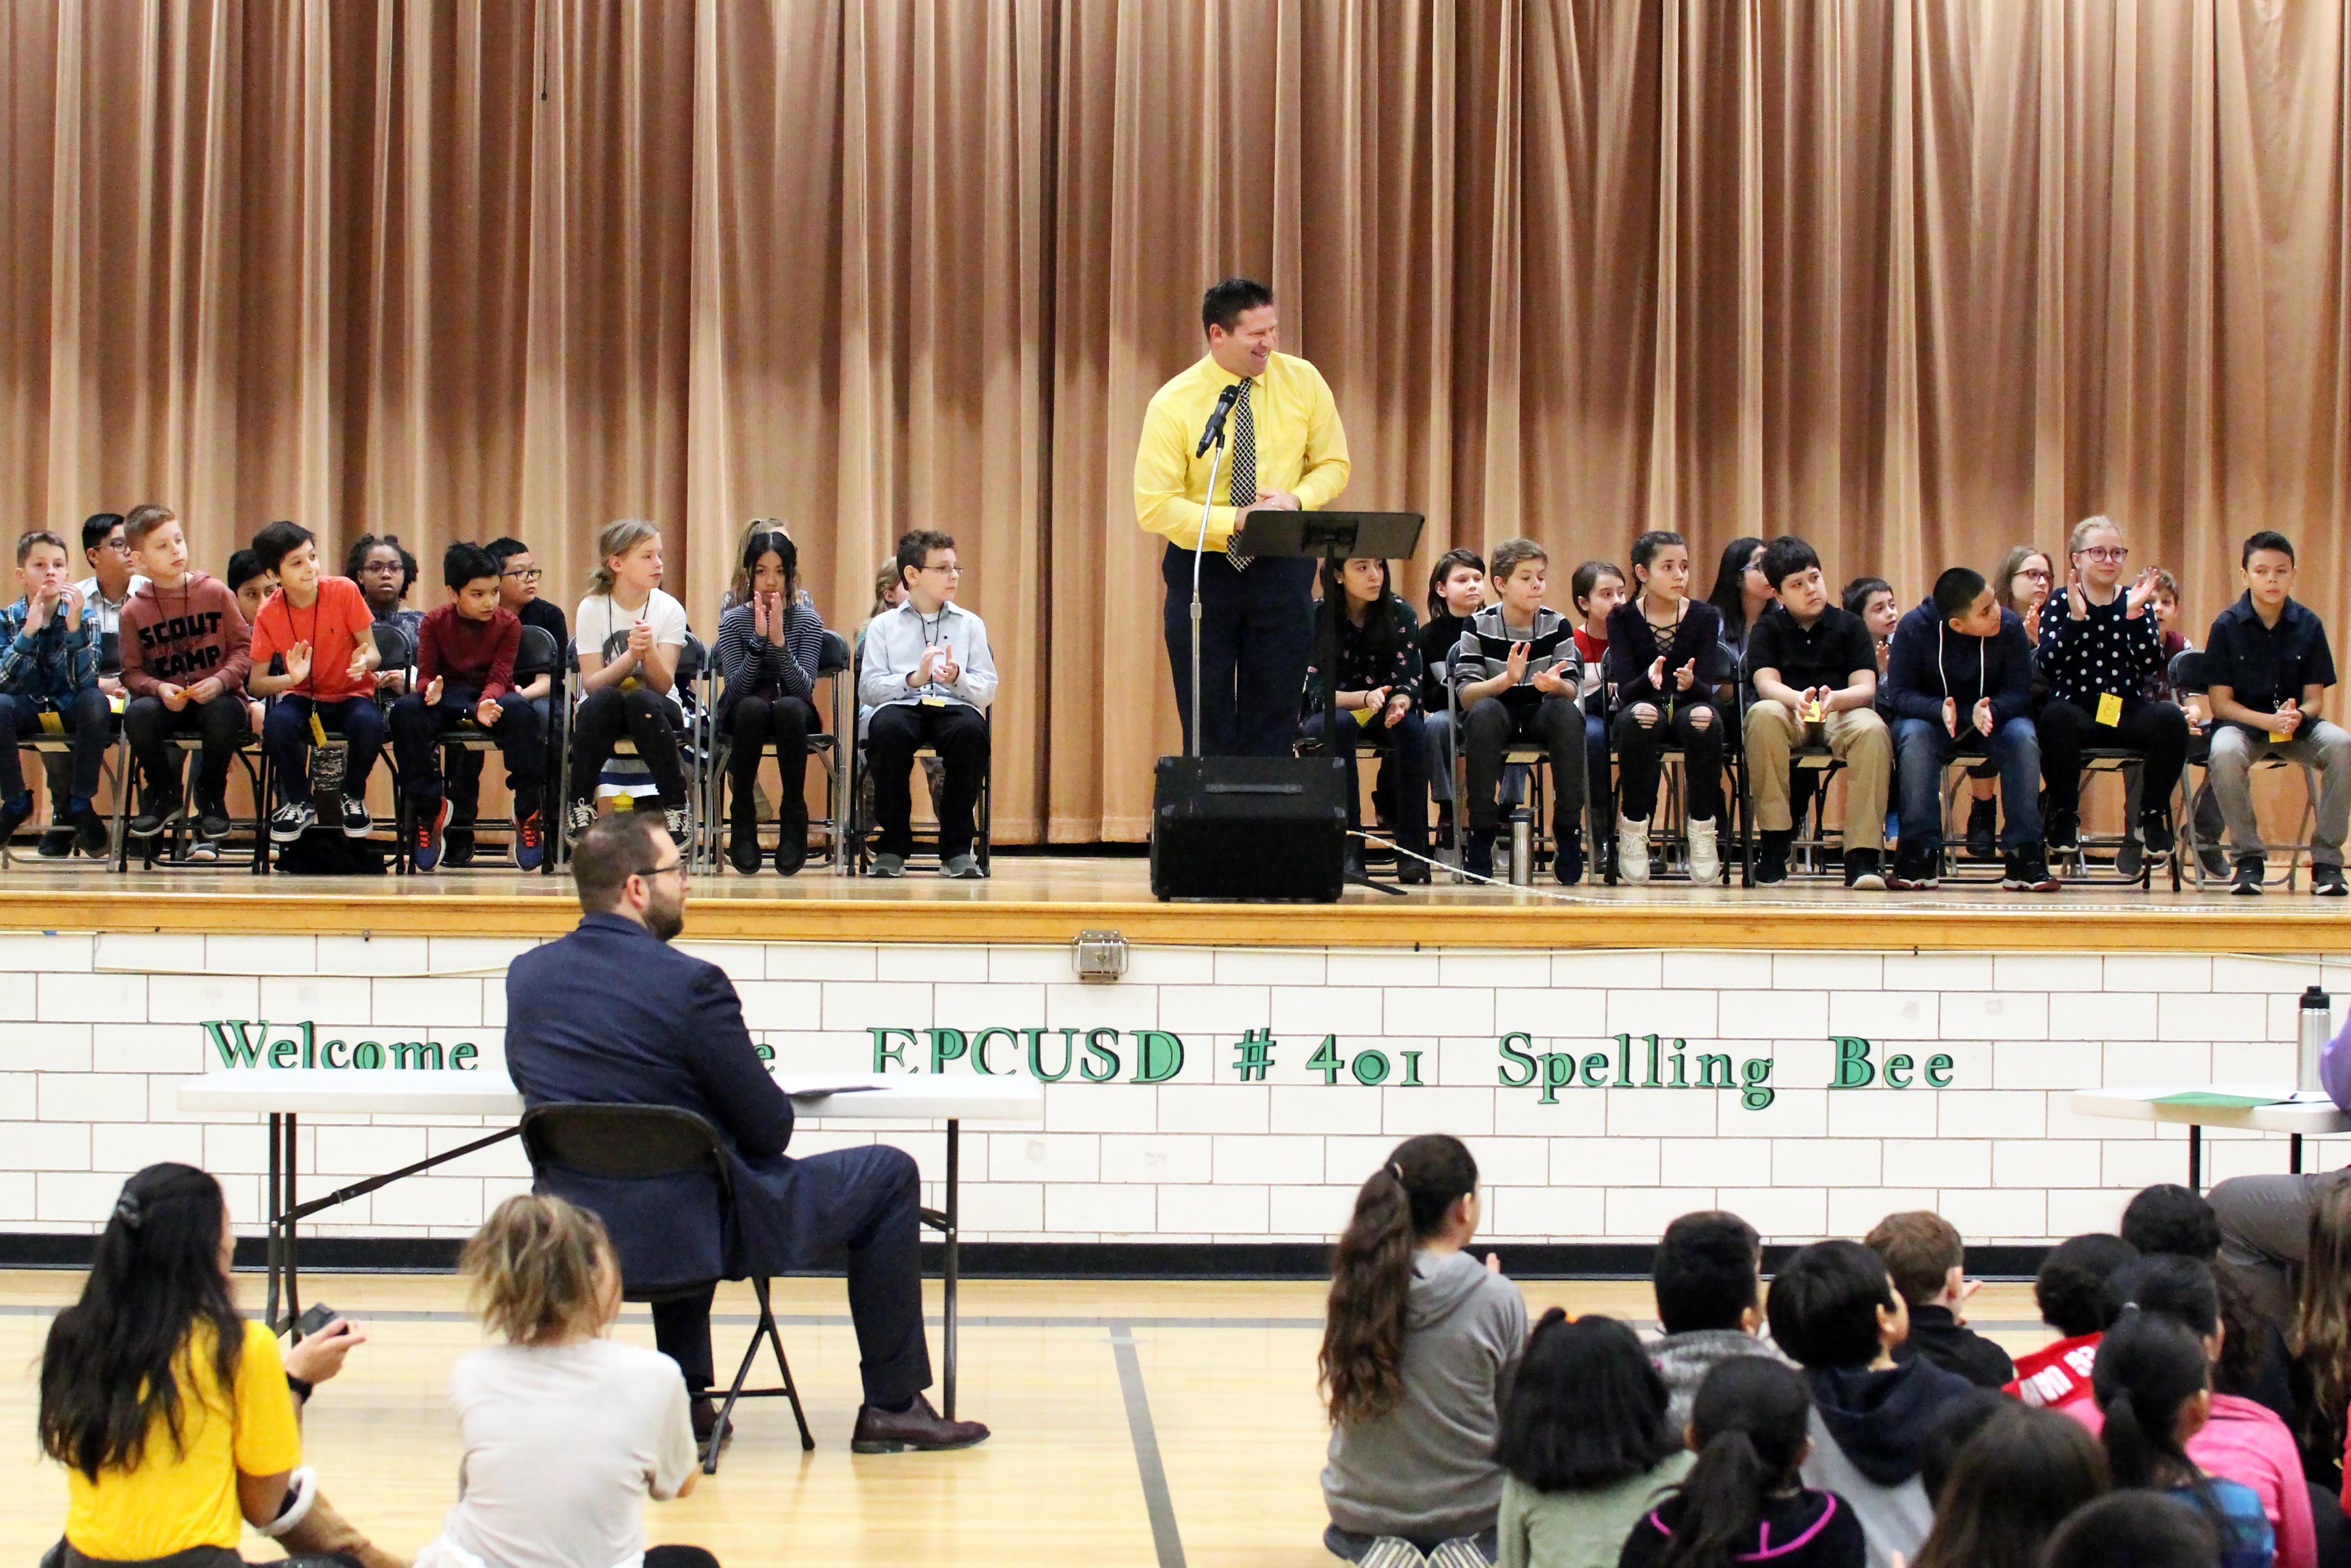 Elmwood Principal Mr. Matthew Lerner welcomes students, parents and guests to the 2019 District 401 Spelling Bee. Superintendent of Schools Dr. Nicolas Wade, the event's official pronouncer, is seated to the left. District 401 photo by Dave Porreca (click image for larger view).